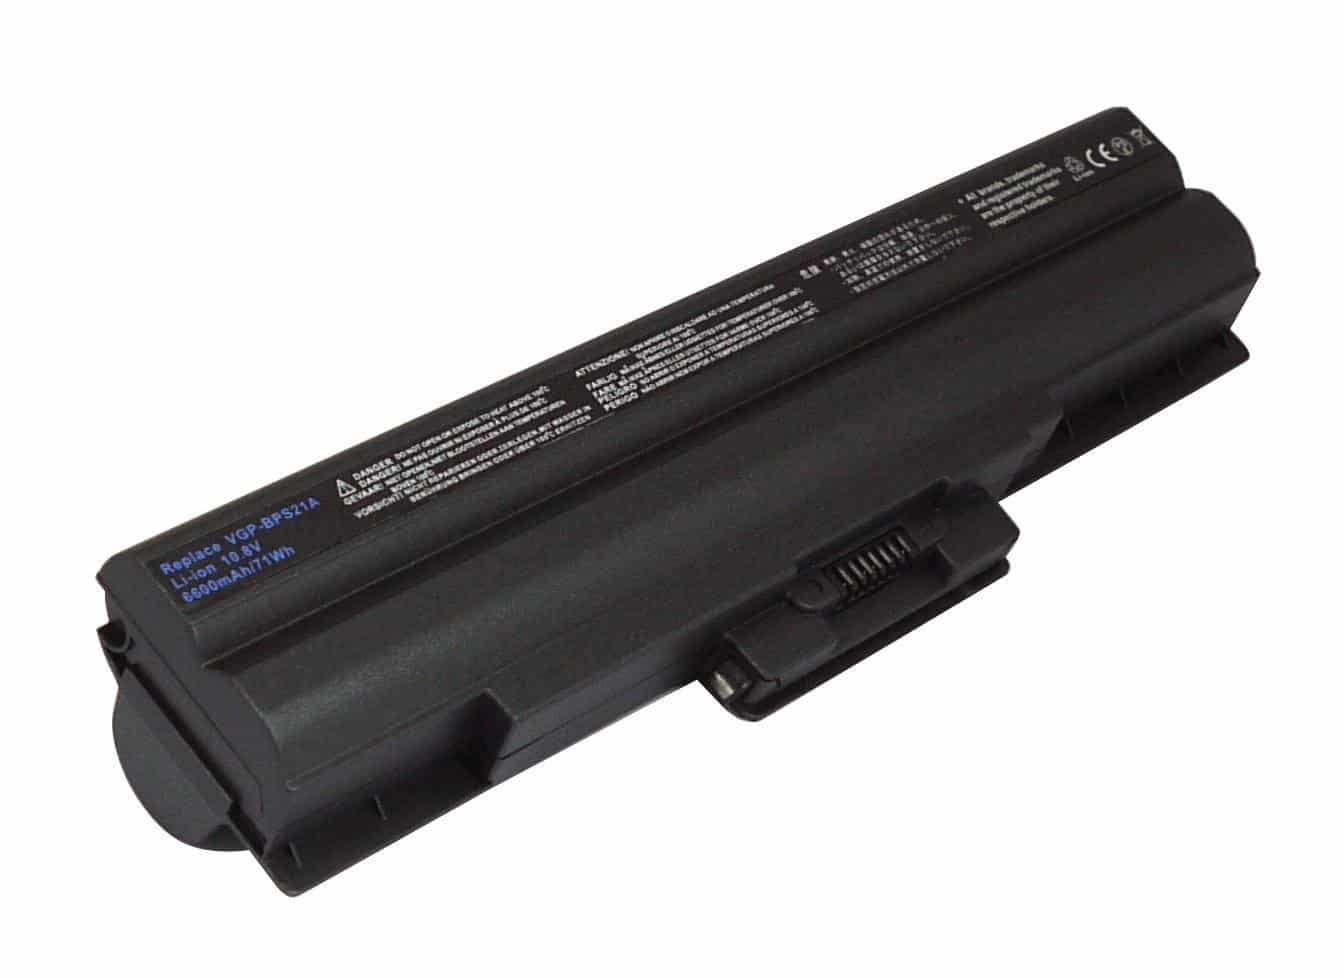 Replacement laptop battery 6-Cell 11.1V 5200mAh for SONY:VGP-BPS13